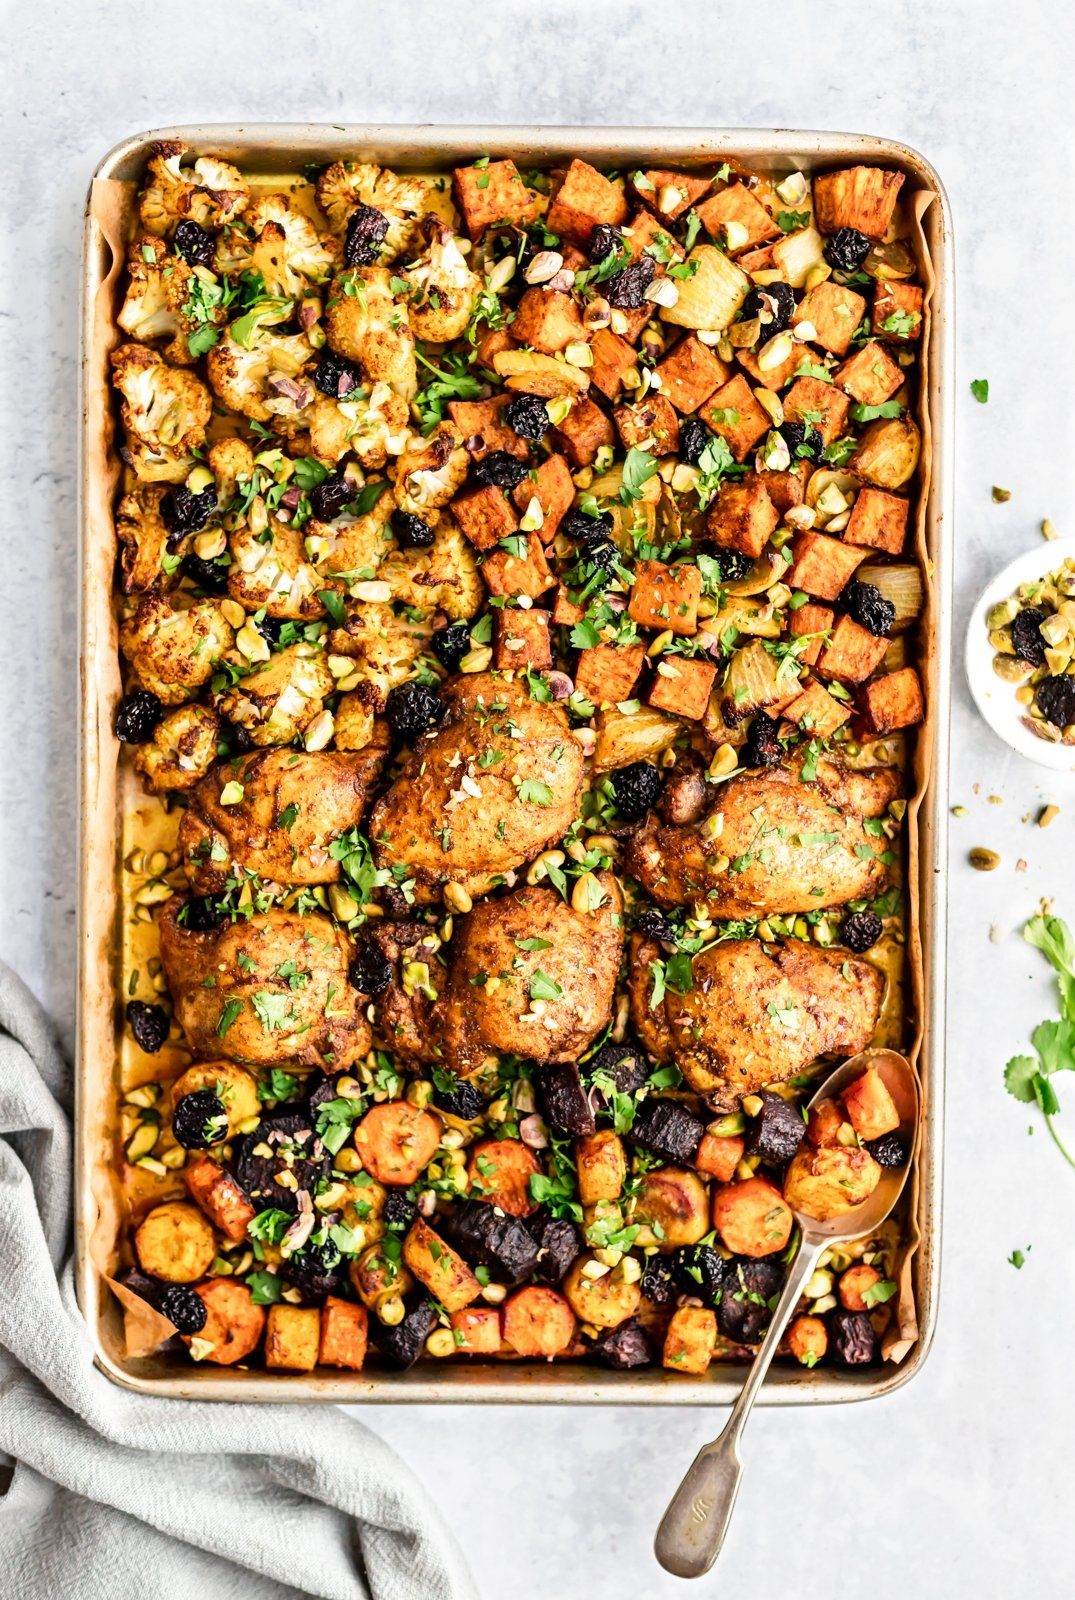 moroccan sheet pan chicken and veggies on a pan with a spoon